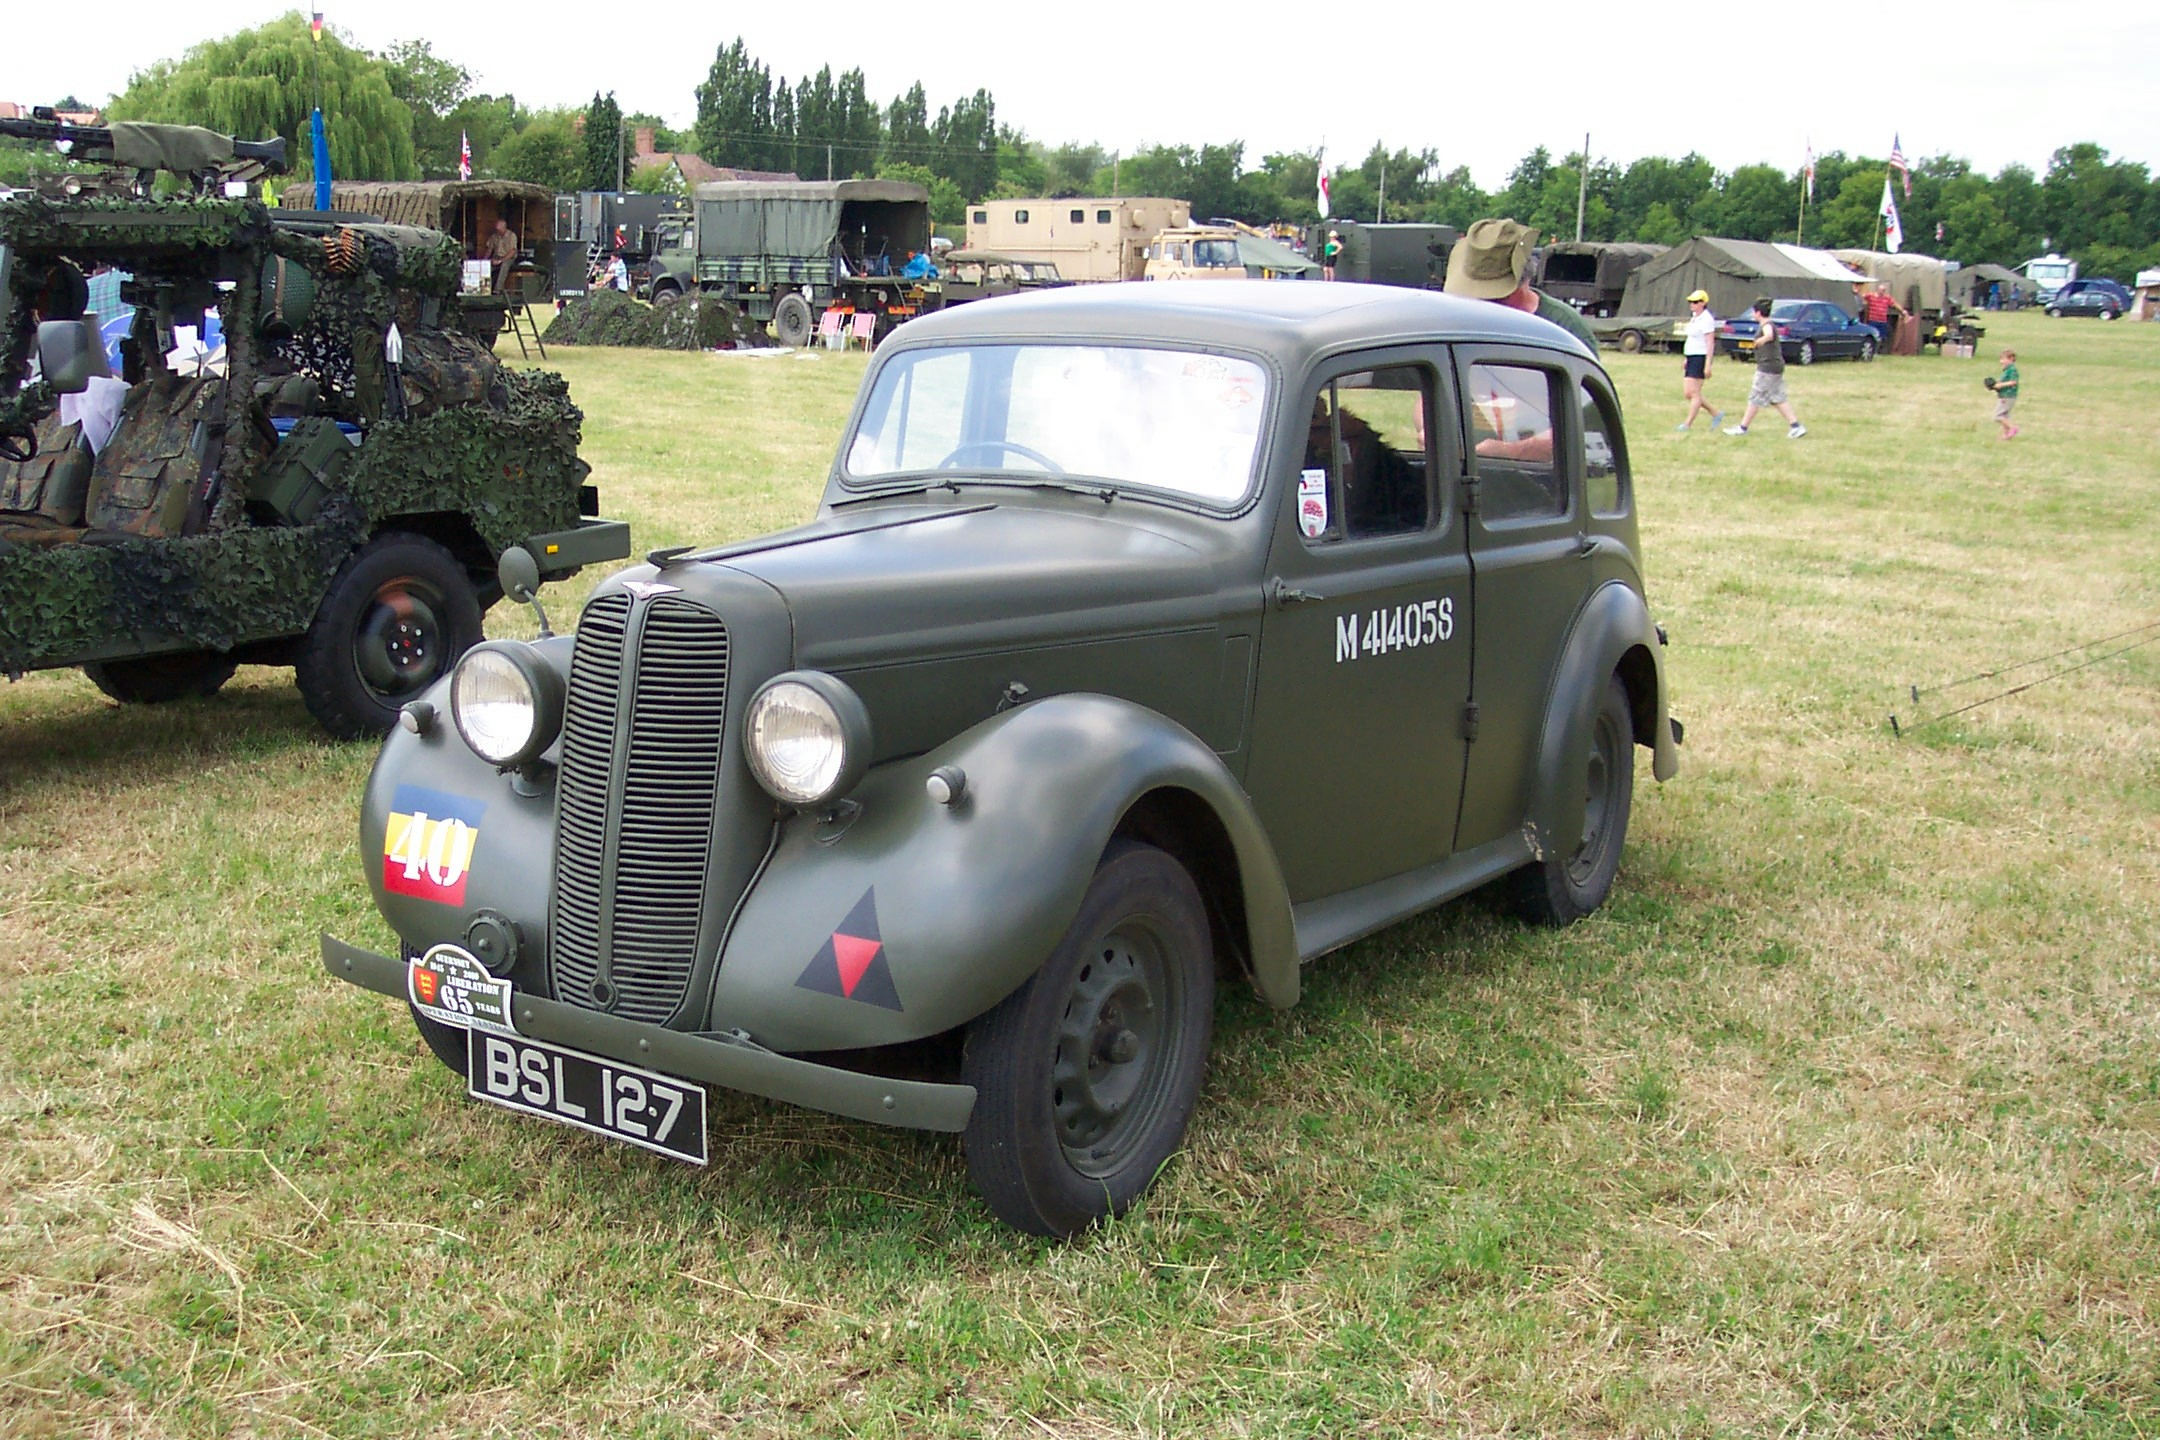 Hillman Minx 10hp Staff Car (BSL 127)